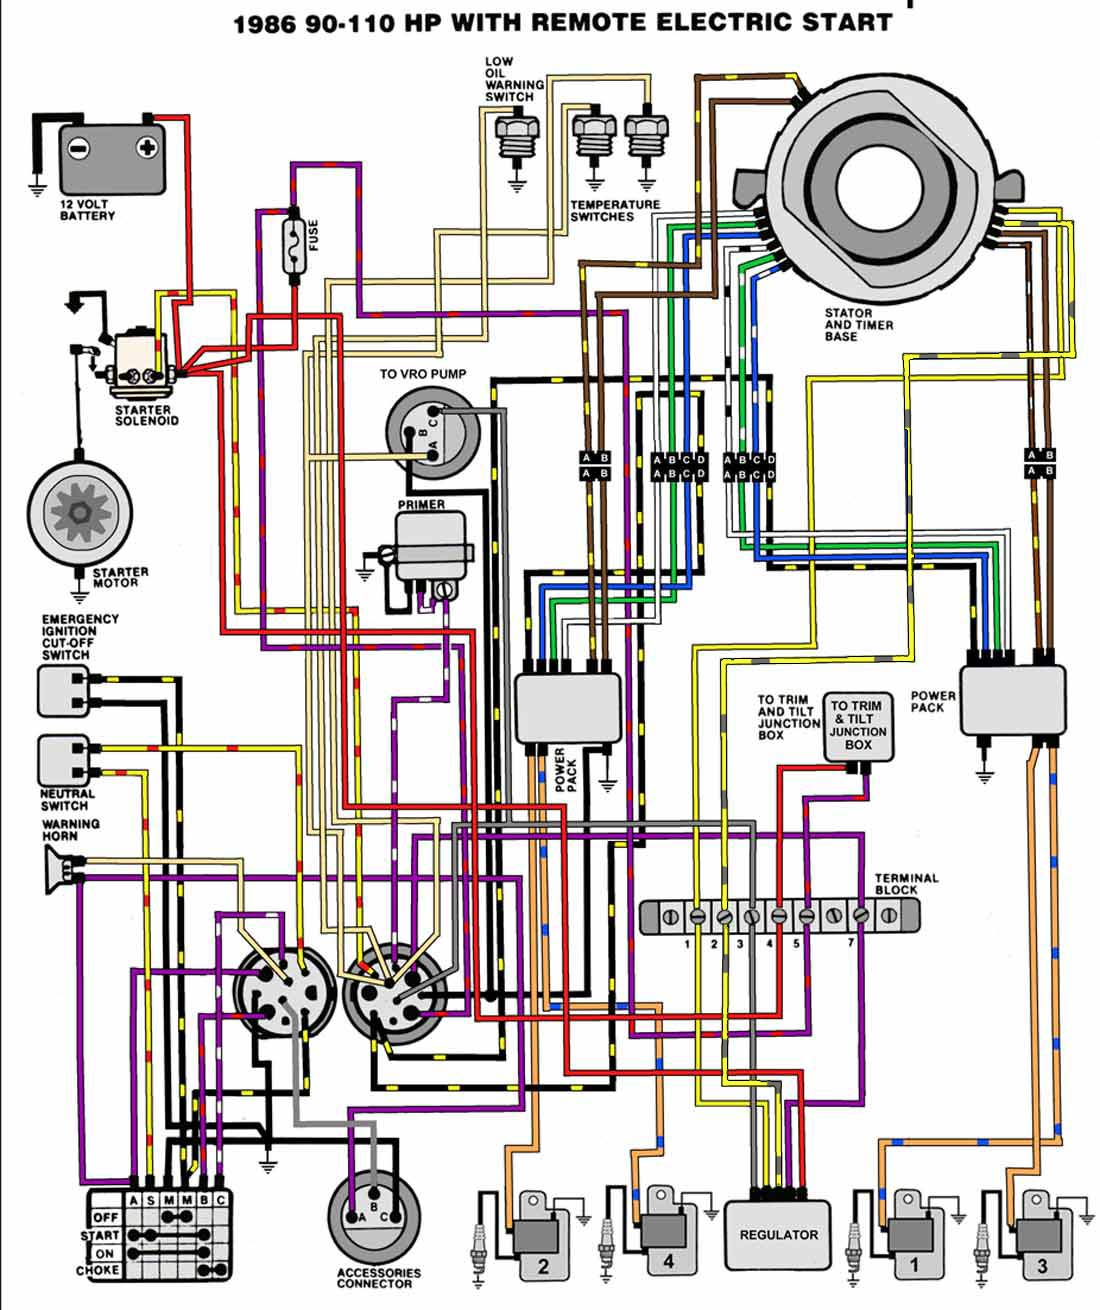 Mercury 115 Wiring Diagram | Online Wiring Diagram on mercury 115 wiring harness, mercury 90 wiring harness, mercury smartcraft wiring harness, ranger wiring harness, mercruiser wiring harness, mercury 850 wiring harness, dodge wiring harness, mercury control box wiring harness, yanmar wiring harness, mercury 500 wiring harness, mercury marine wire harness, ford wiring harness, omc wiring harness, minn kota trolling motor wiring harness, pcm wiring harness, stratos wiring harness, verado wiring harness, mercury optimax wiring harness, glastron wiring harness, mercury mariner wiring harness,